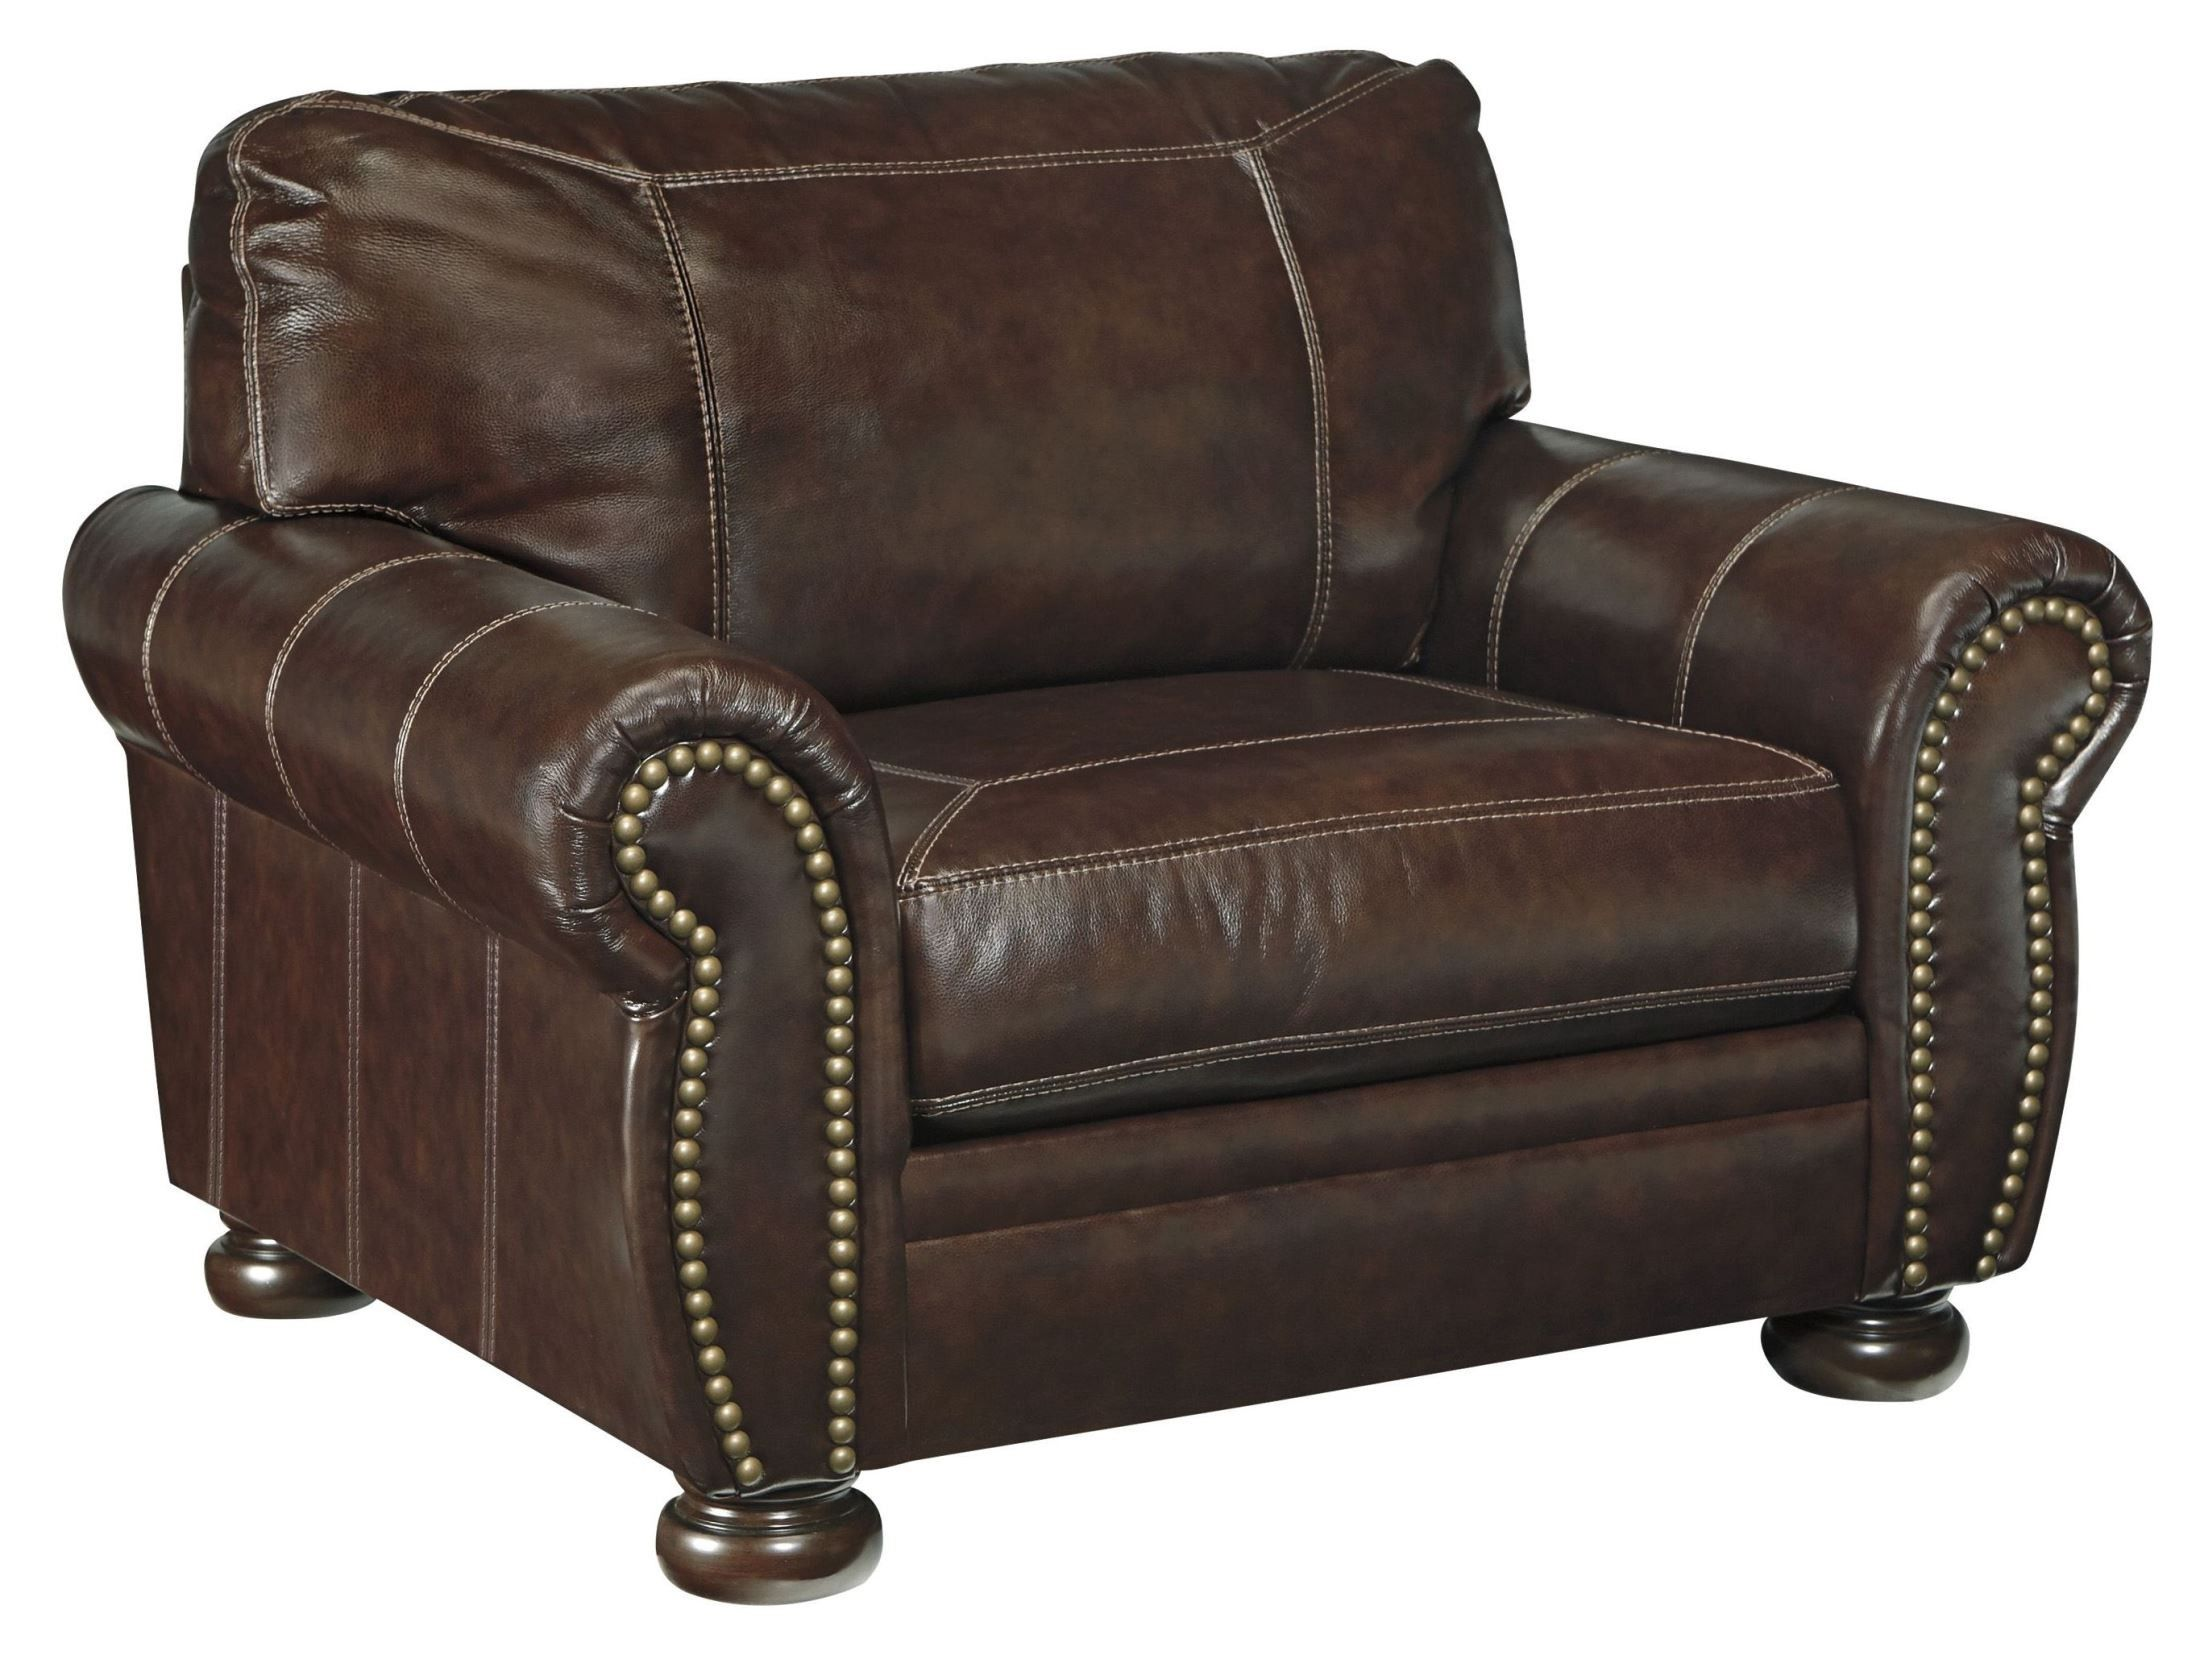 Banner Coffee Chair And A Half In 2020 Chair And A Half Leather Accent Chair Leather Chair